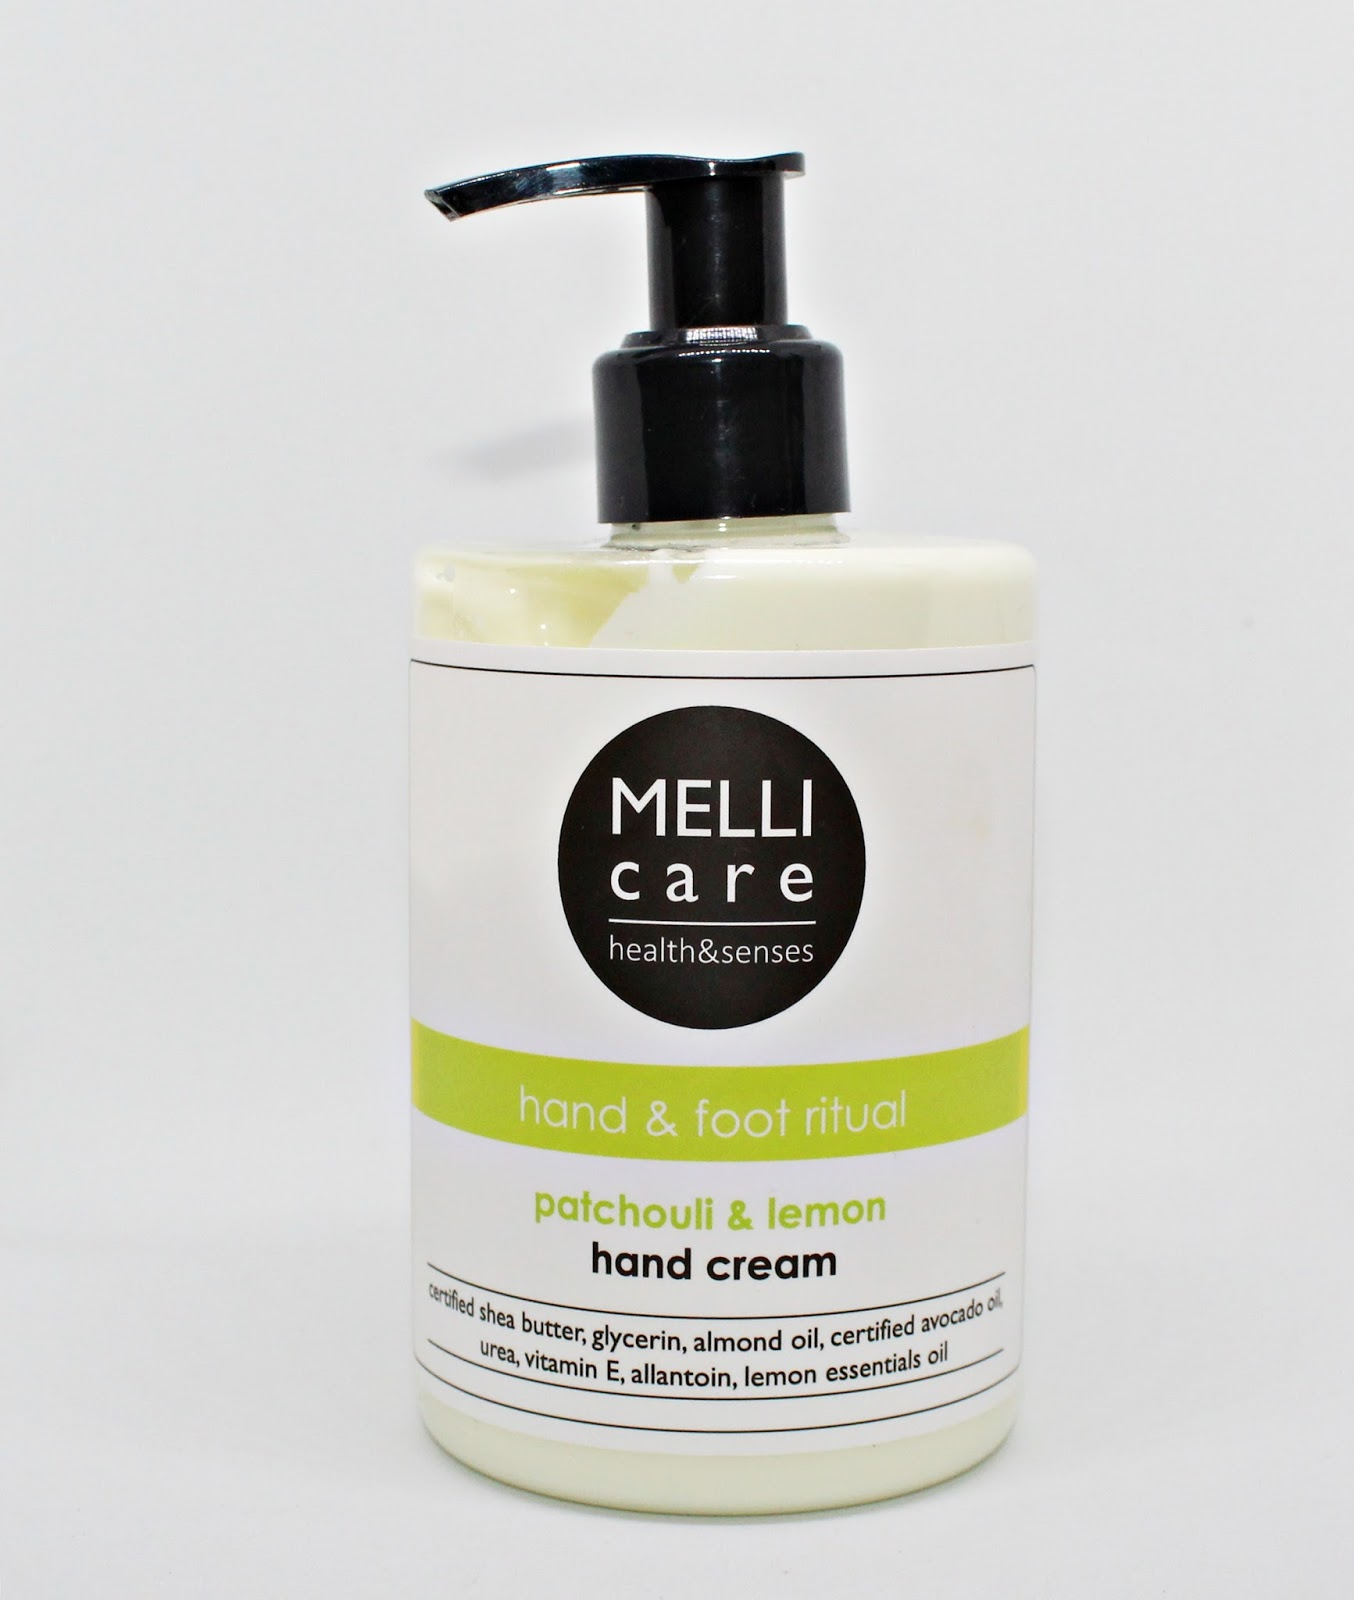 Krem do rąk i stóp PATCHOULI & LEMON - MELLI CARE